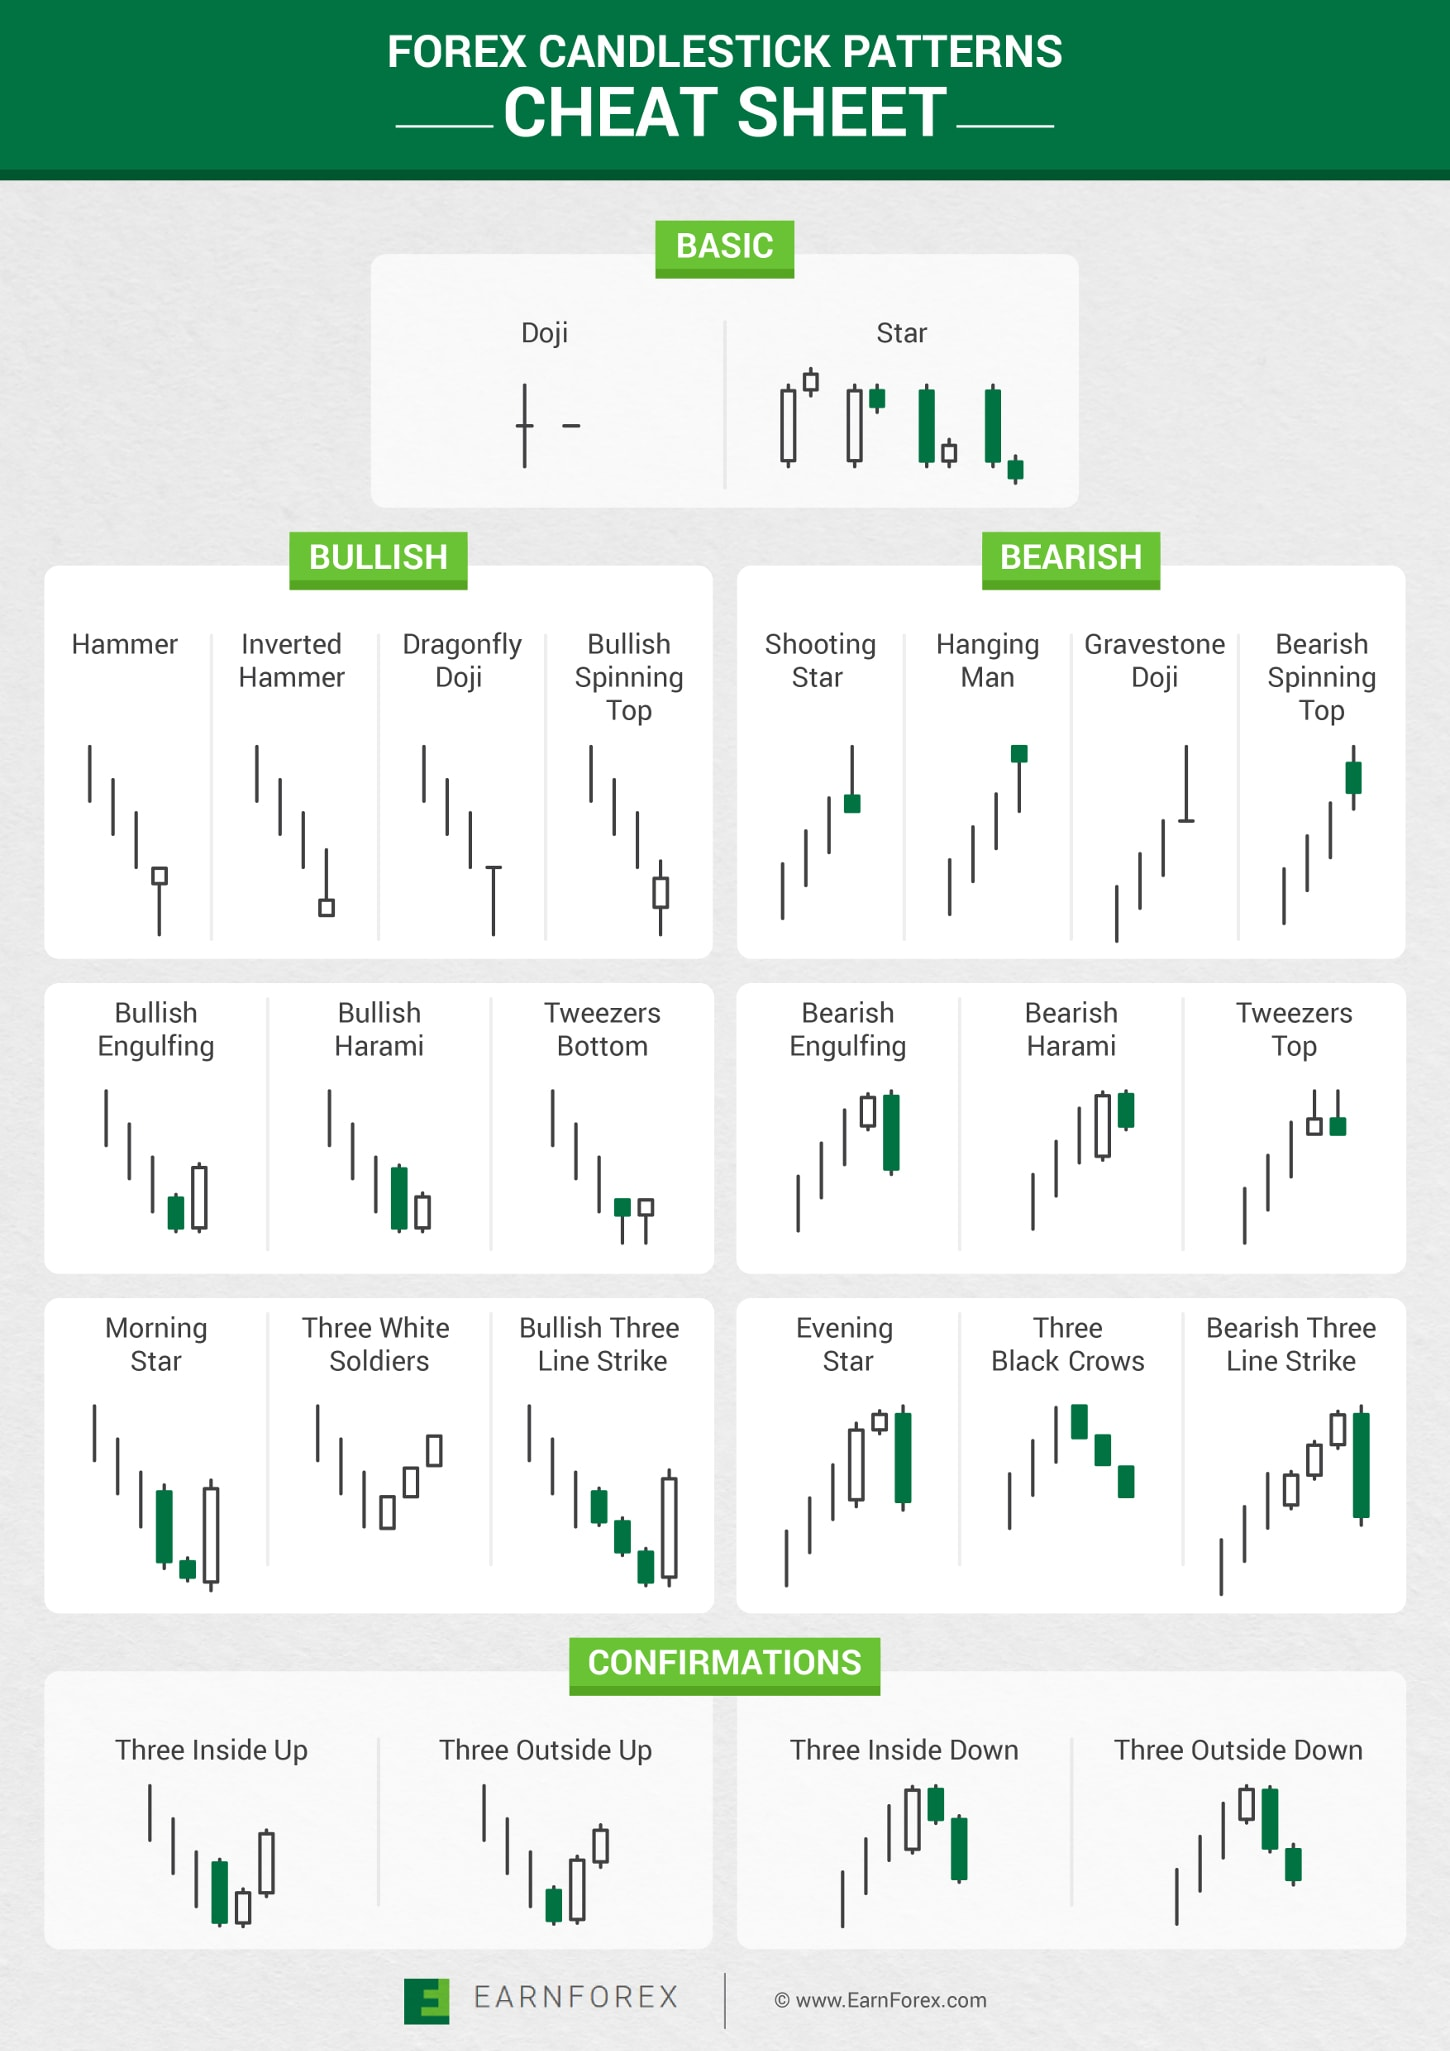 Complete%20Forex%20Candlestick%20Chart%20Patterns%20Cheat%20Sheet.jpg